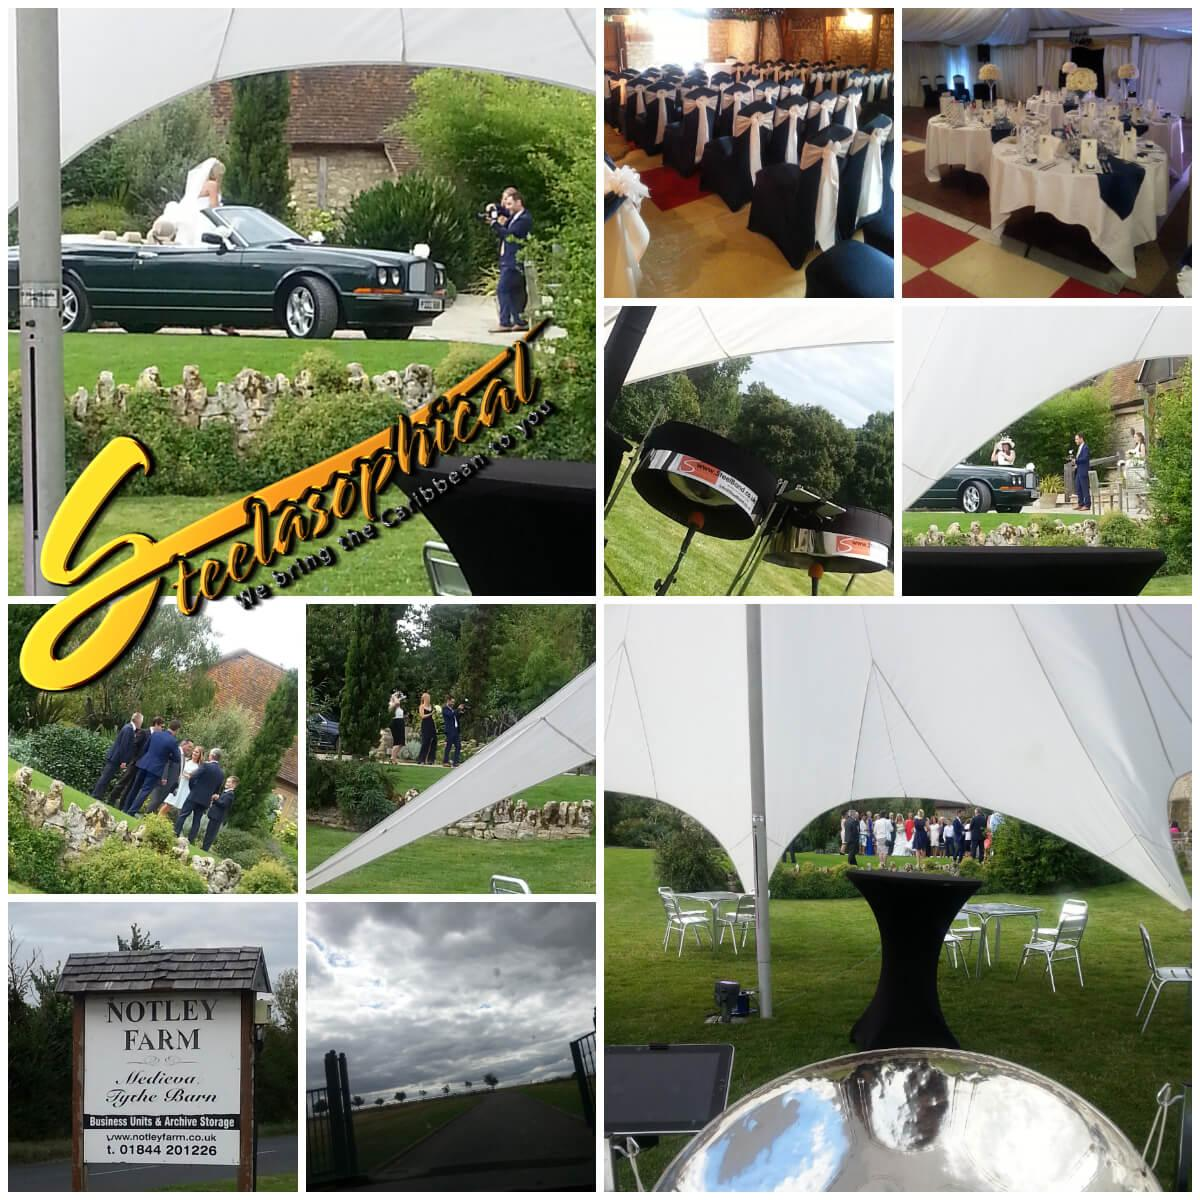 Steelasophical steel band wedding Notely Farm